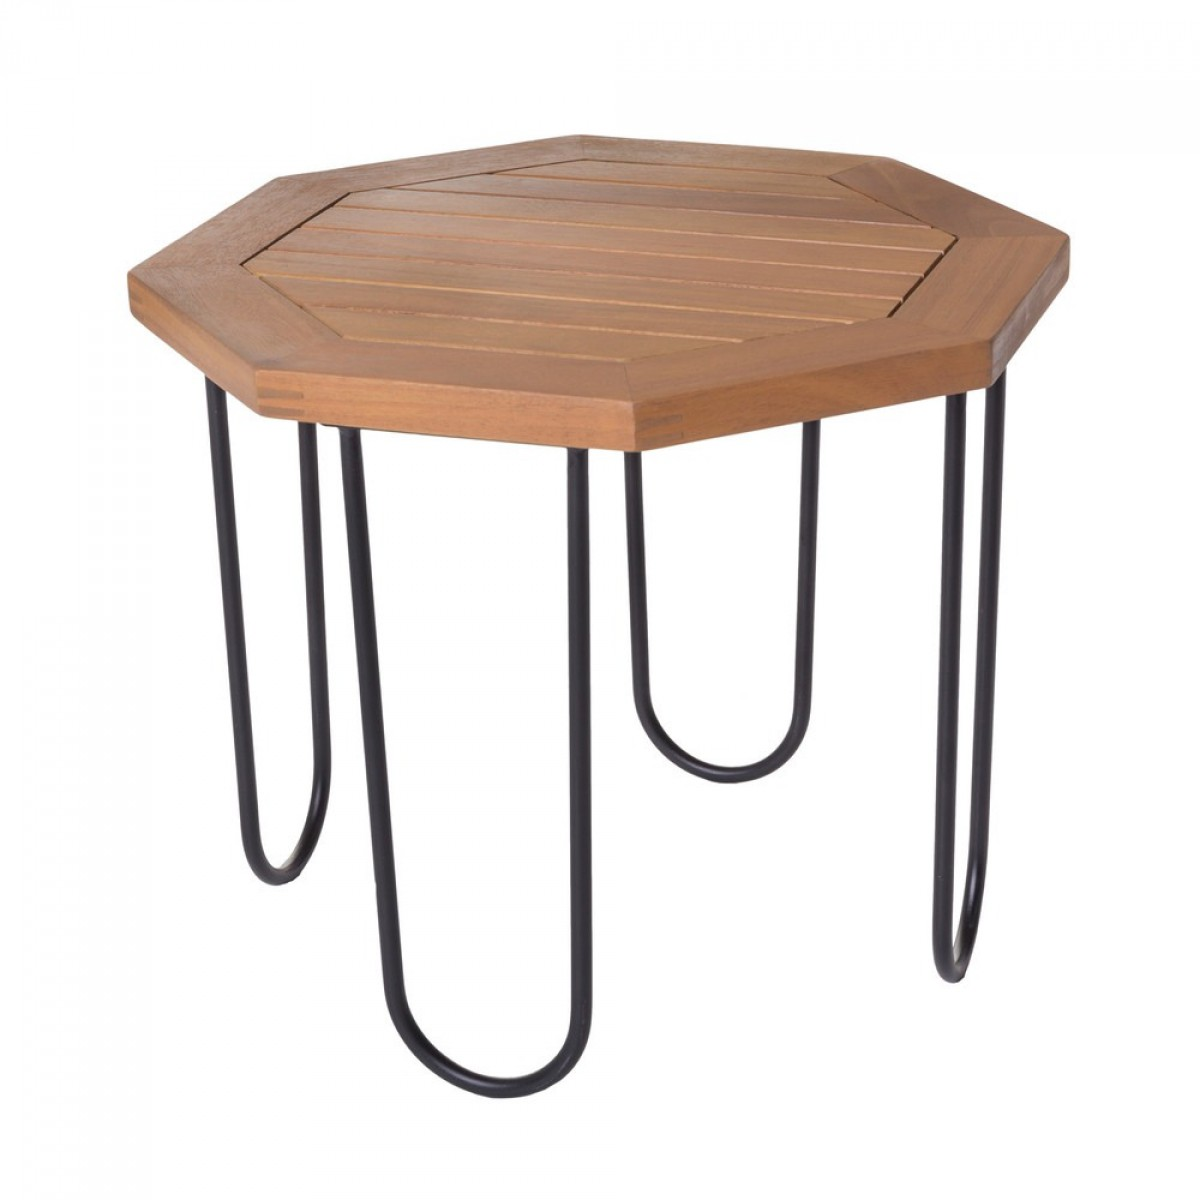 Table basse de jardin hexagonal acacia - Salma